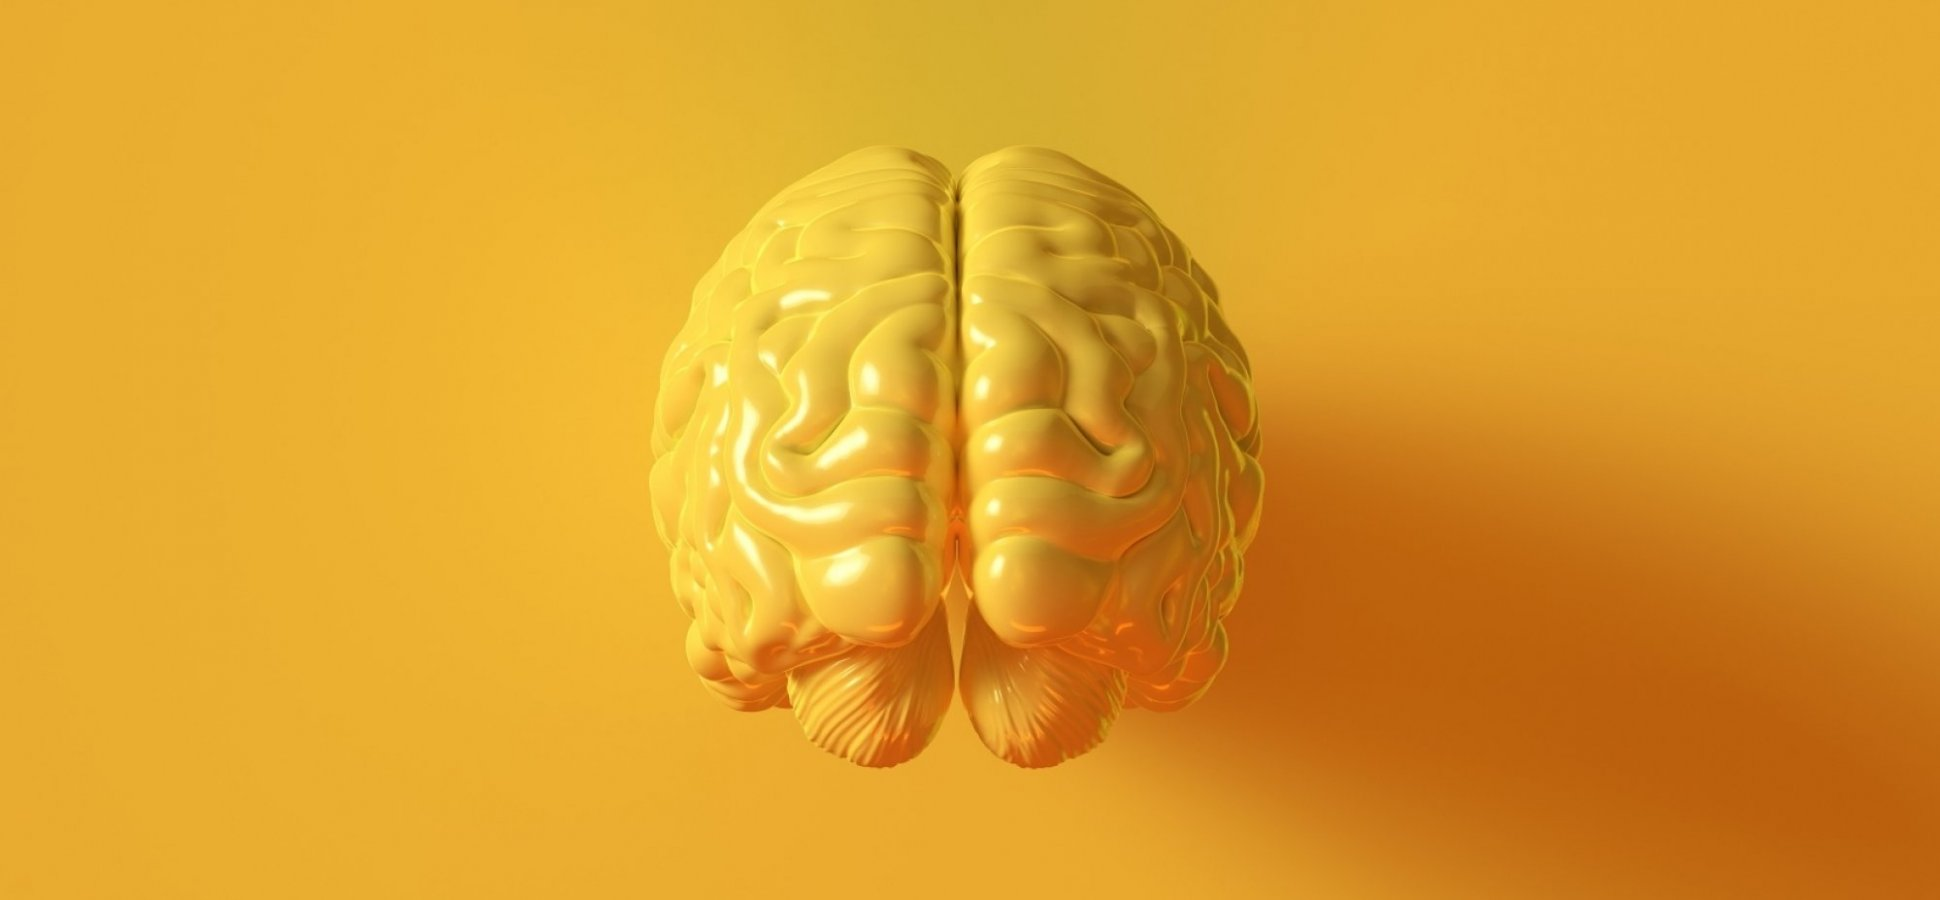 Want To Stop Your Brain From Aging By Up To 10 Years? This 1 Simple Thing Might Do It, Says Science